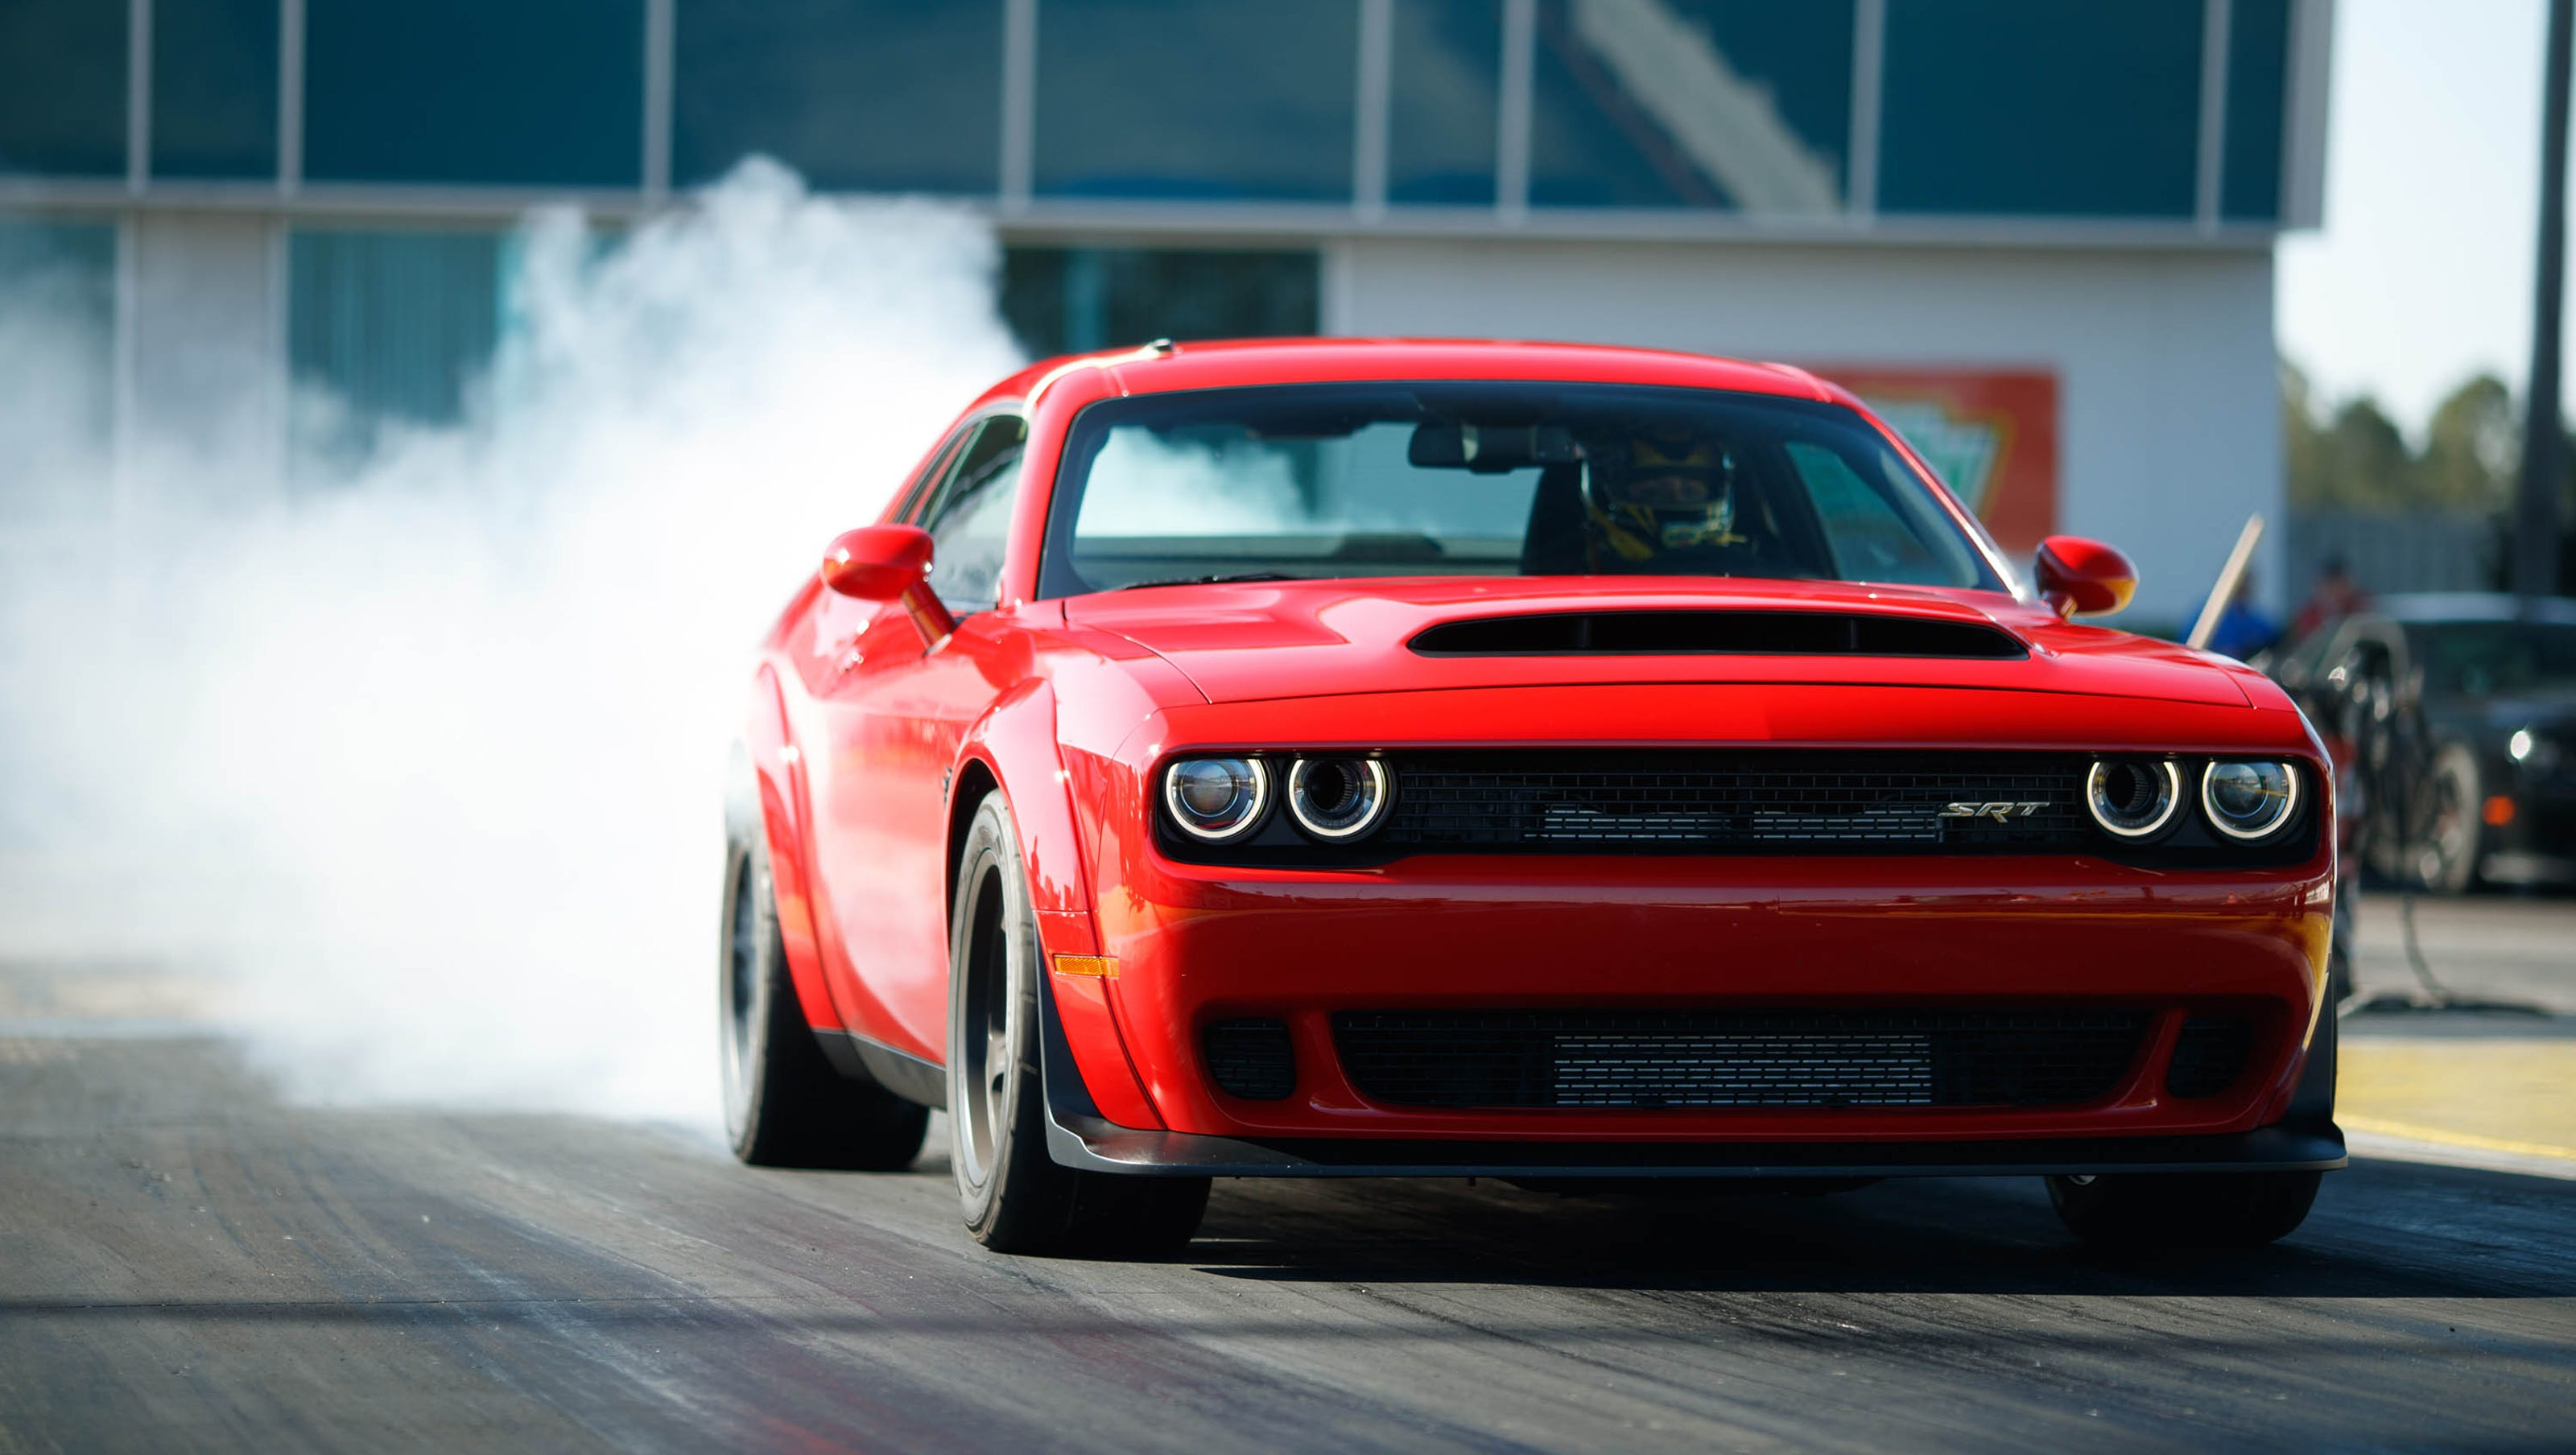 2018 Charger Demon >> These Specs On The 2018 Dodge Demon Are Ridiculous And Awesome